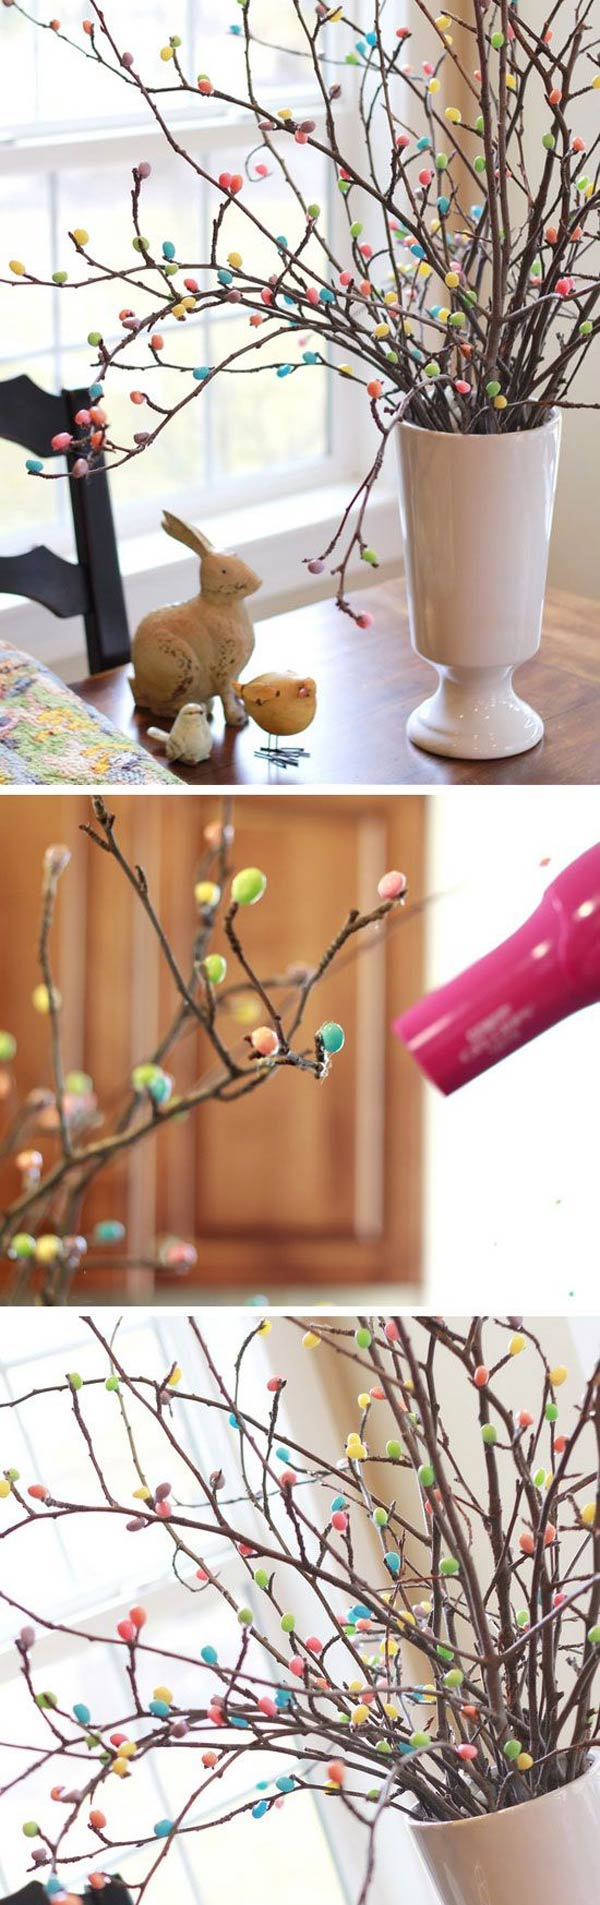 Easter table centerpiece made from some apple tree branches and jelly beans